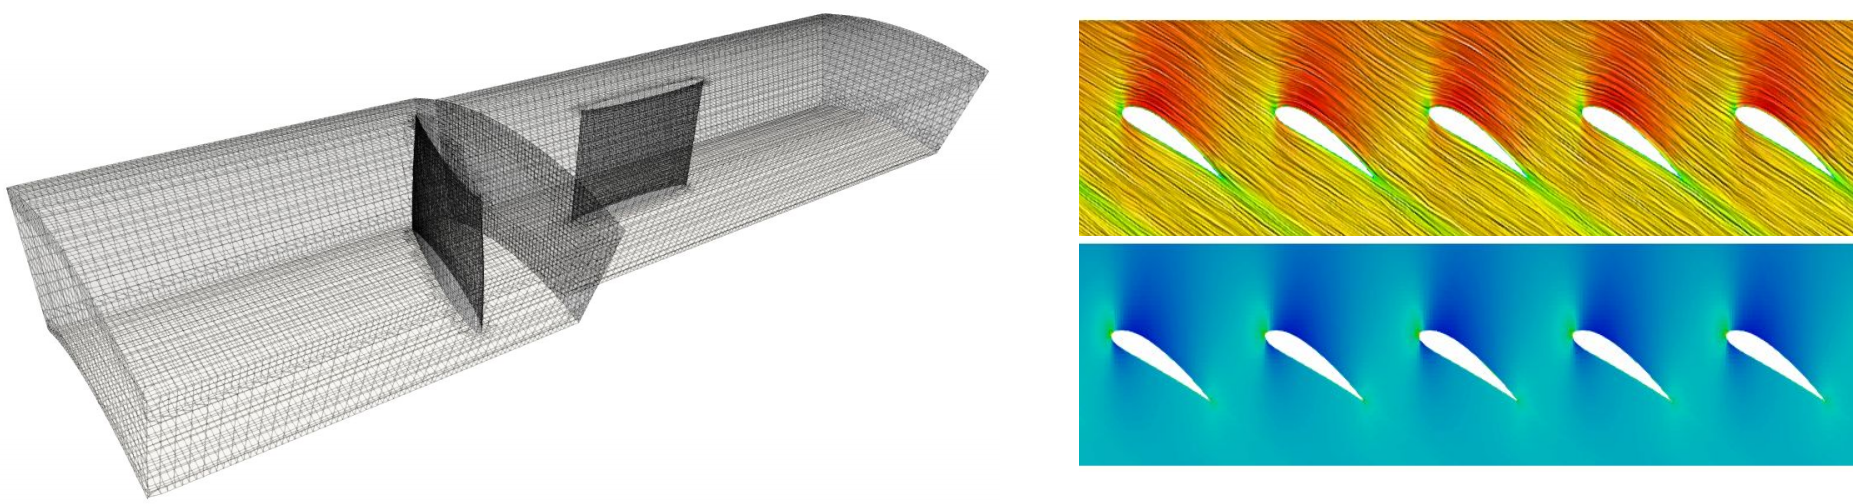 Axial fan meshing and CFD analysis using TCFD